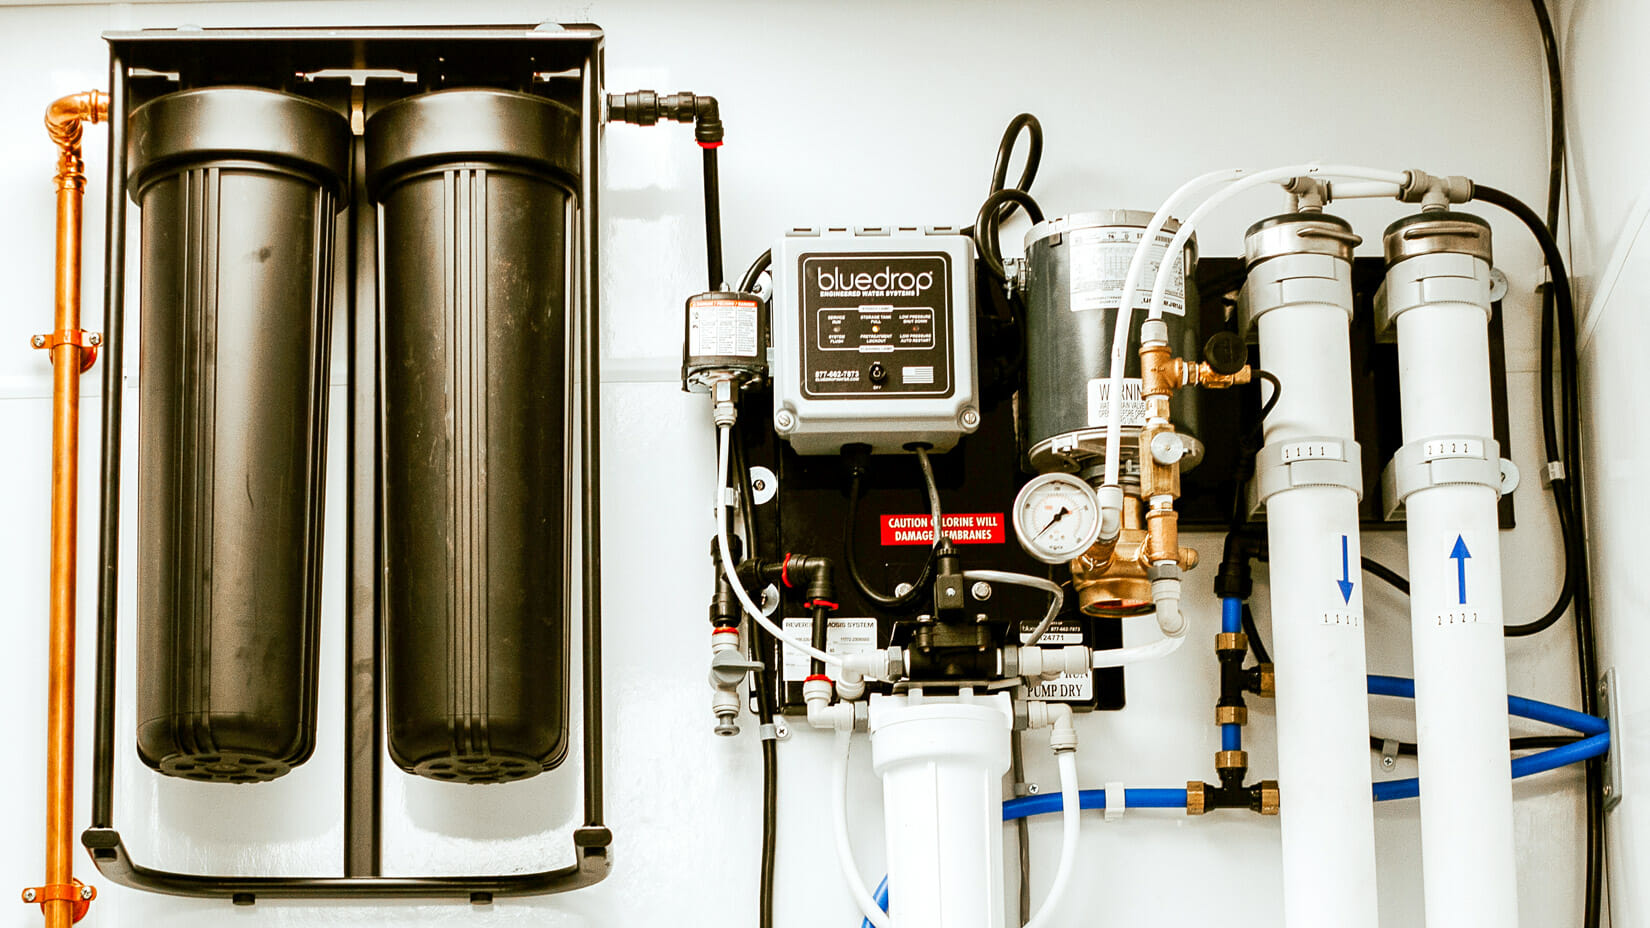 A bluedrop water centralized filtration system.